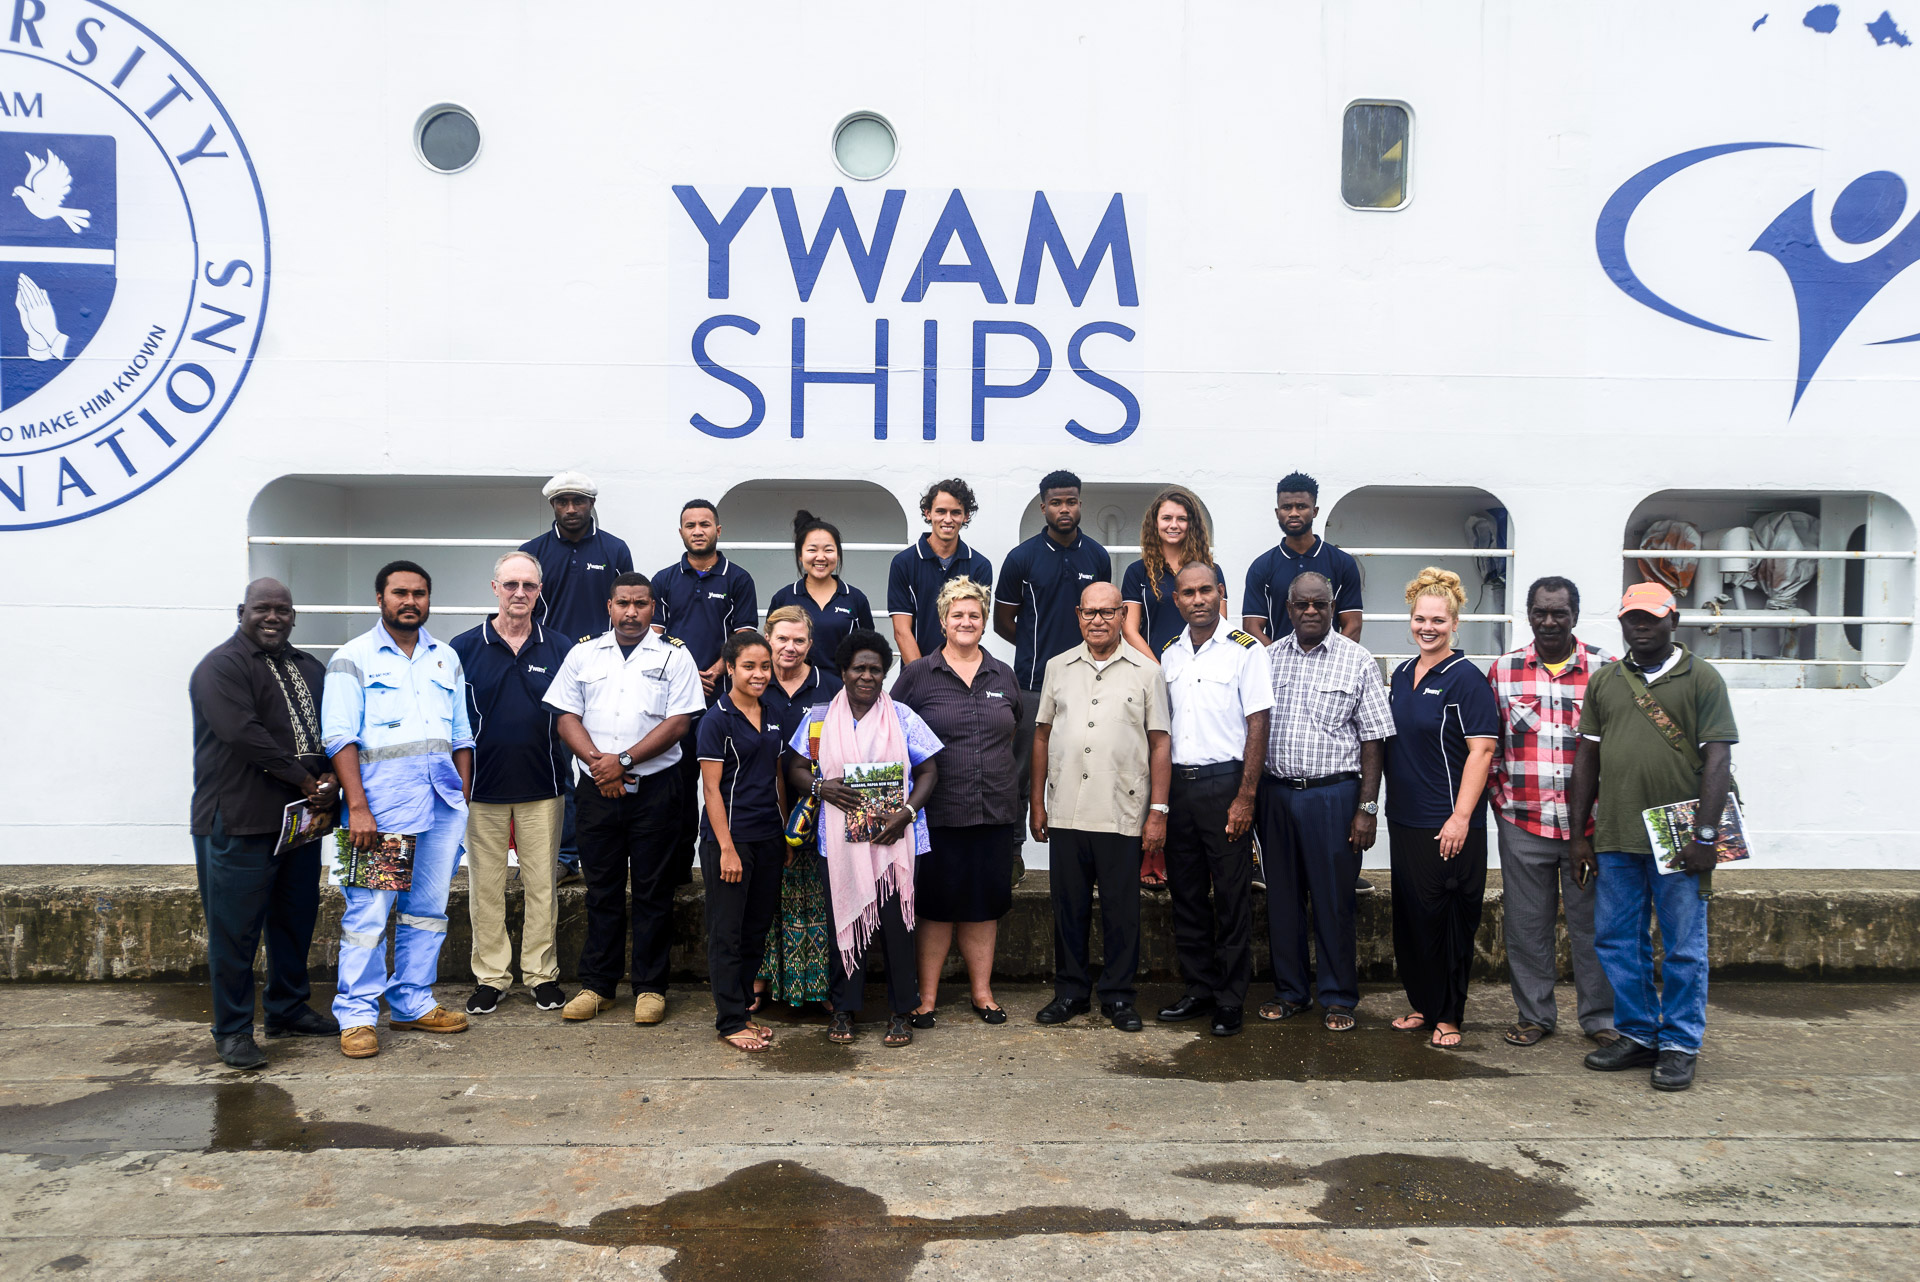 YWAM Ships Welcomes Bougainville President Momis in PNG.